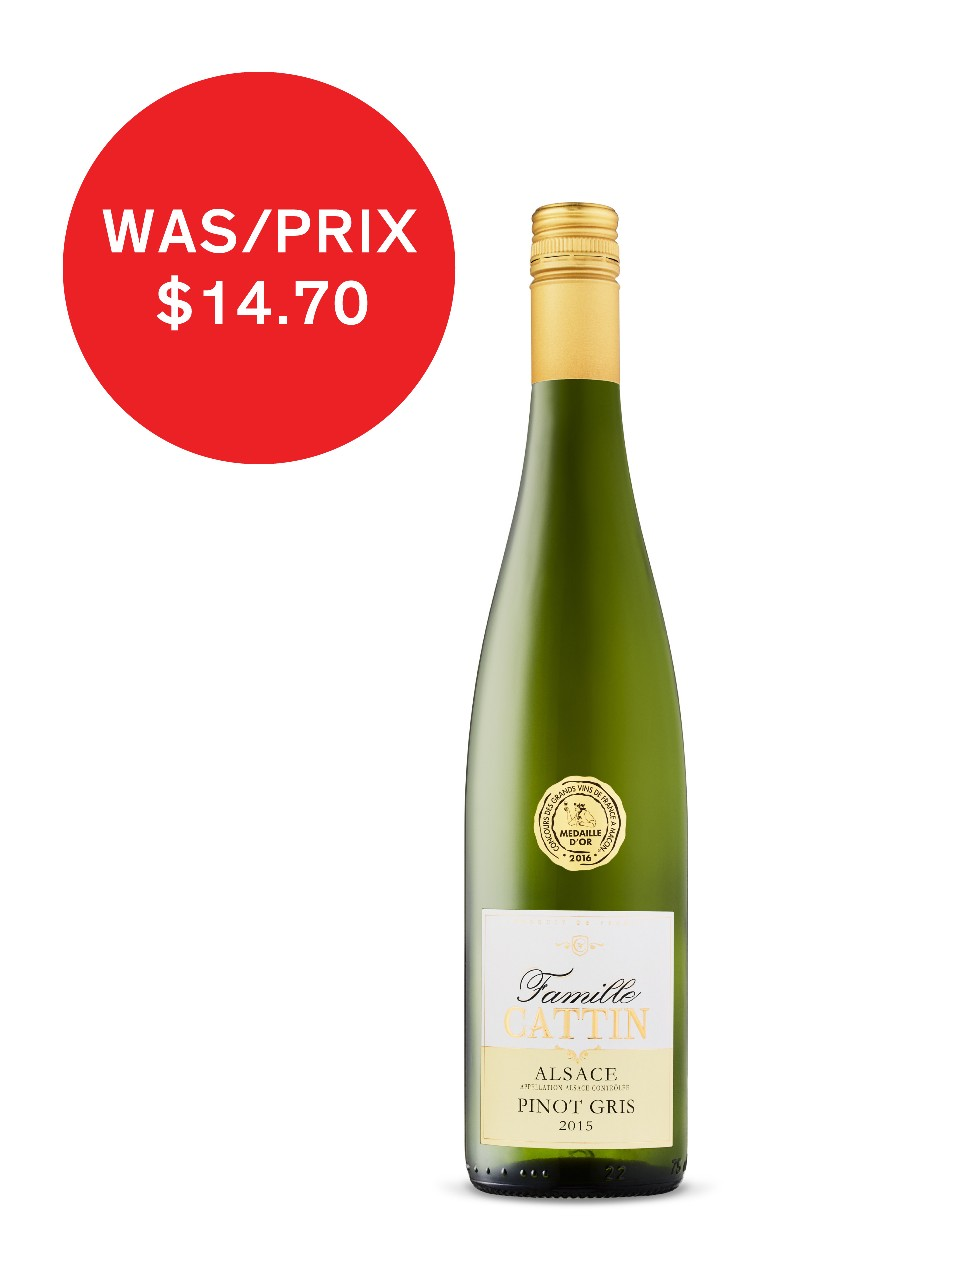 Famille Cattin Pinot Gris Alsace AOC | LCBO